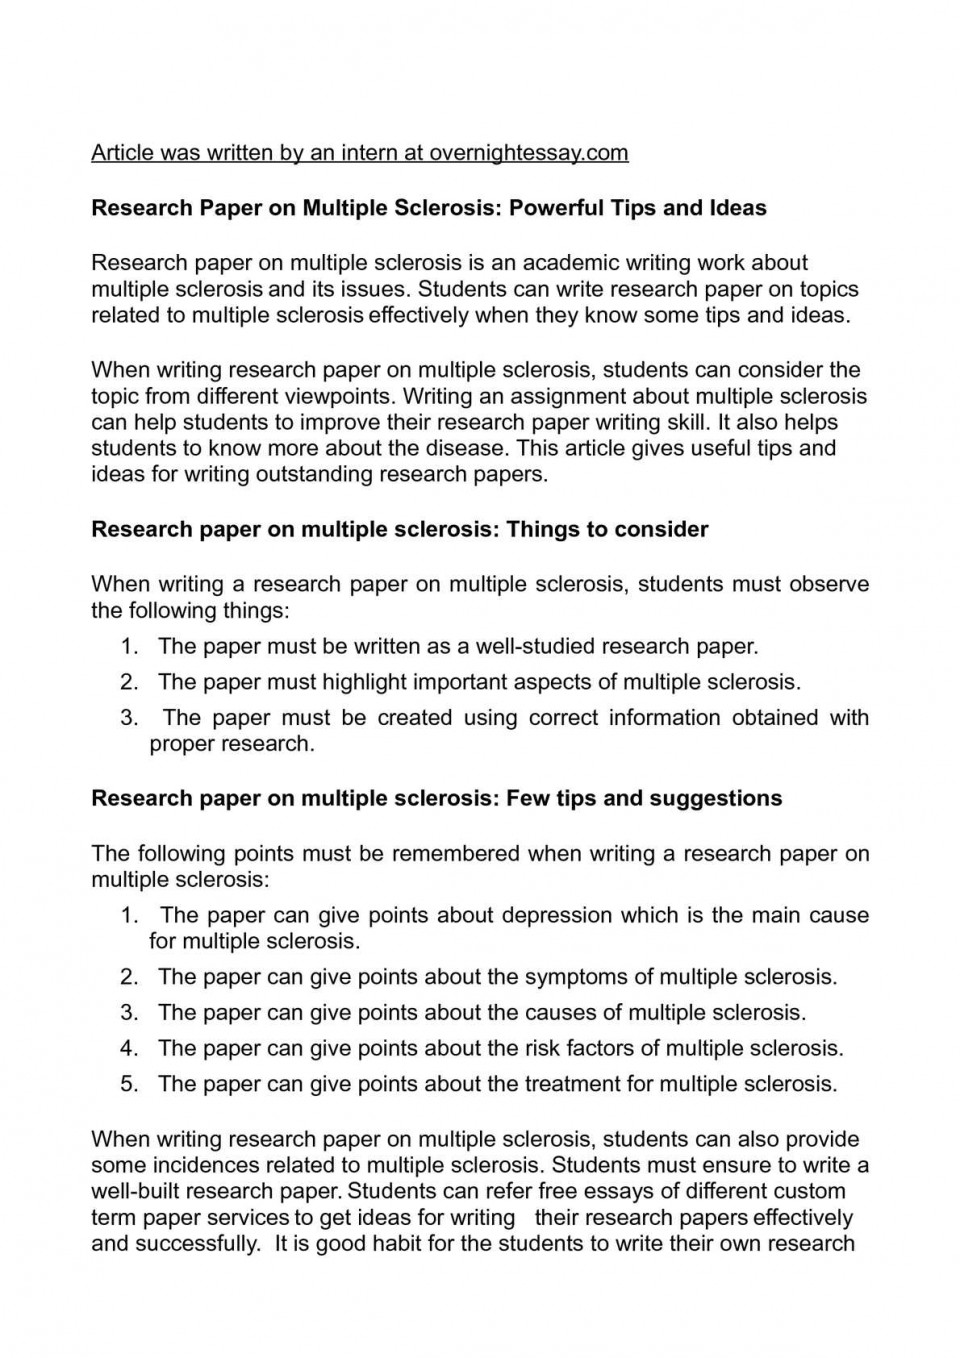 015 P1 Research Paper Write Frightening Papers In Latex My For Me Online Free 960